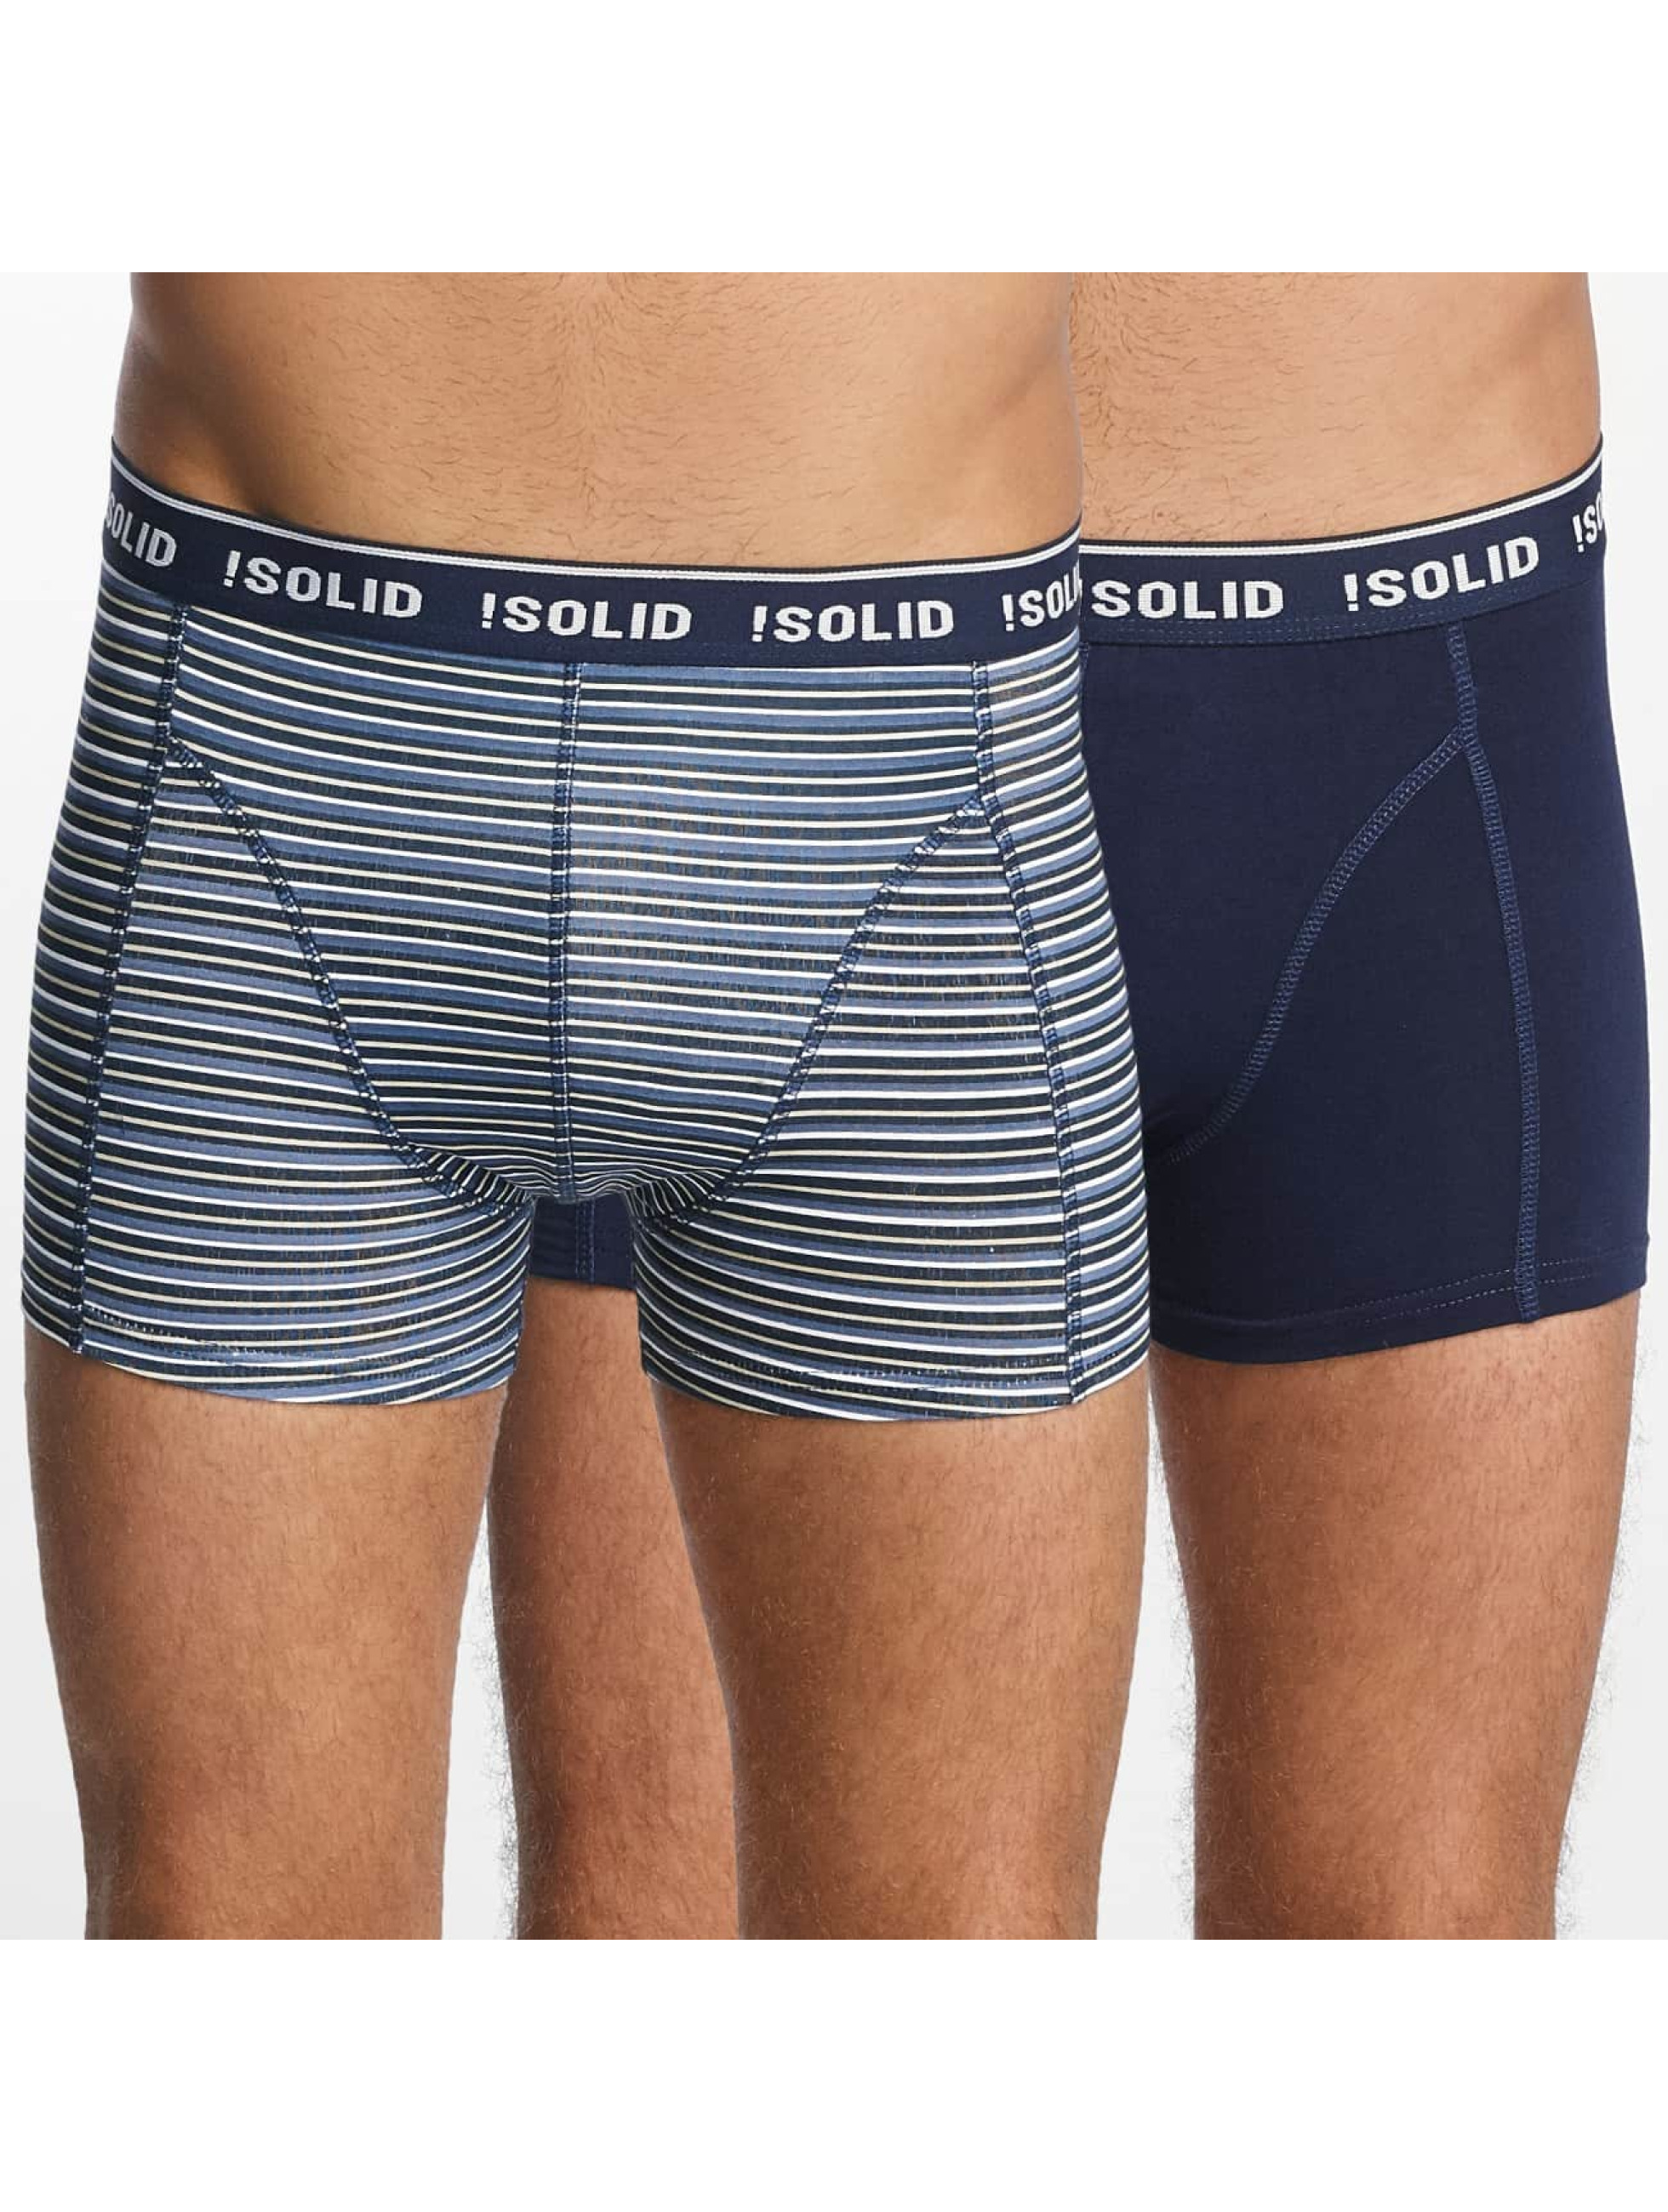 Solid Männer Boxershorts Jacky Trunks 2-Pack in bunt